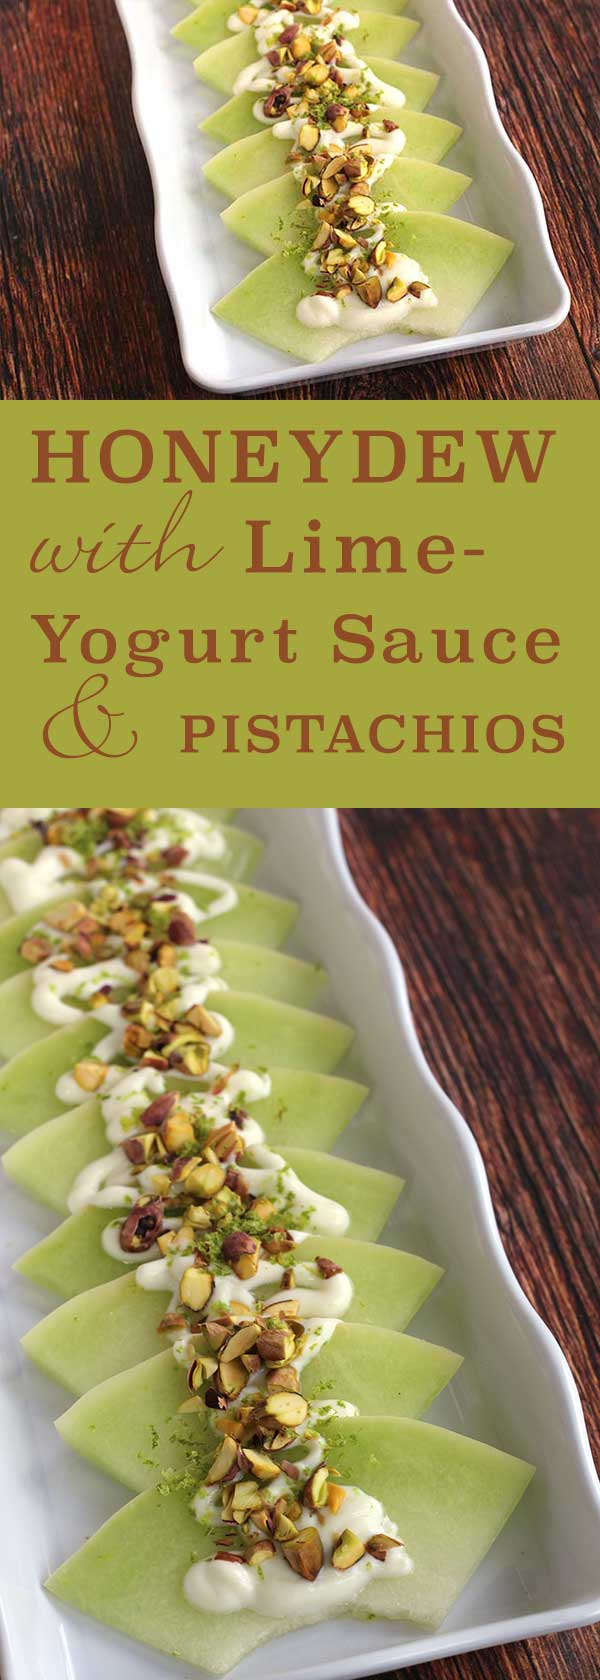 Honeydew with Lime Yogurt Sauce and Pistachios | diabeticfoodie.com